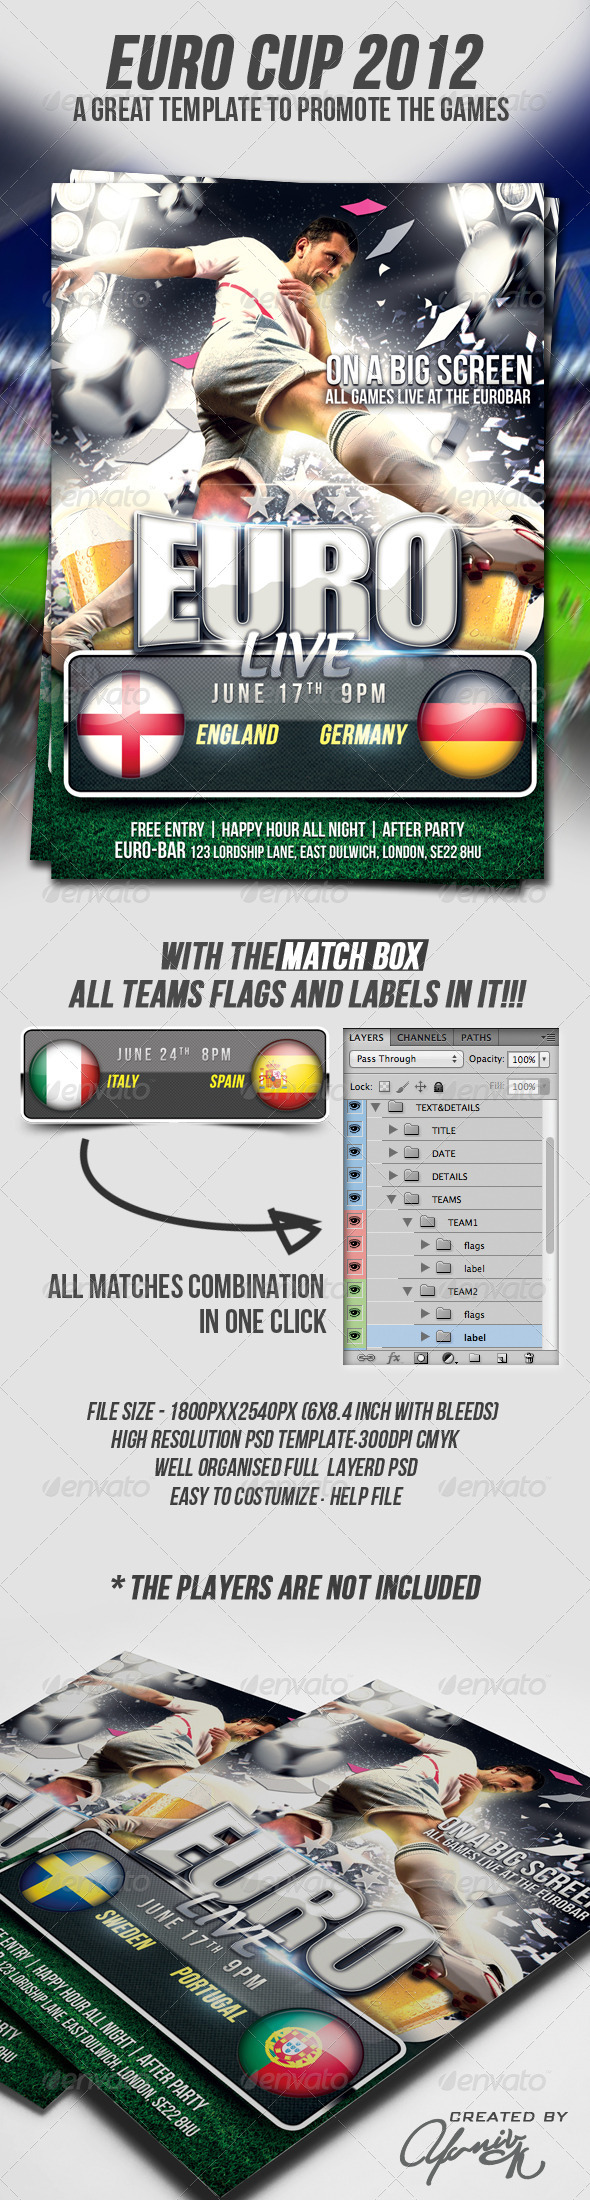 Euro Cup Flyer Template - Flyers Print Templates